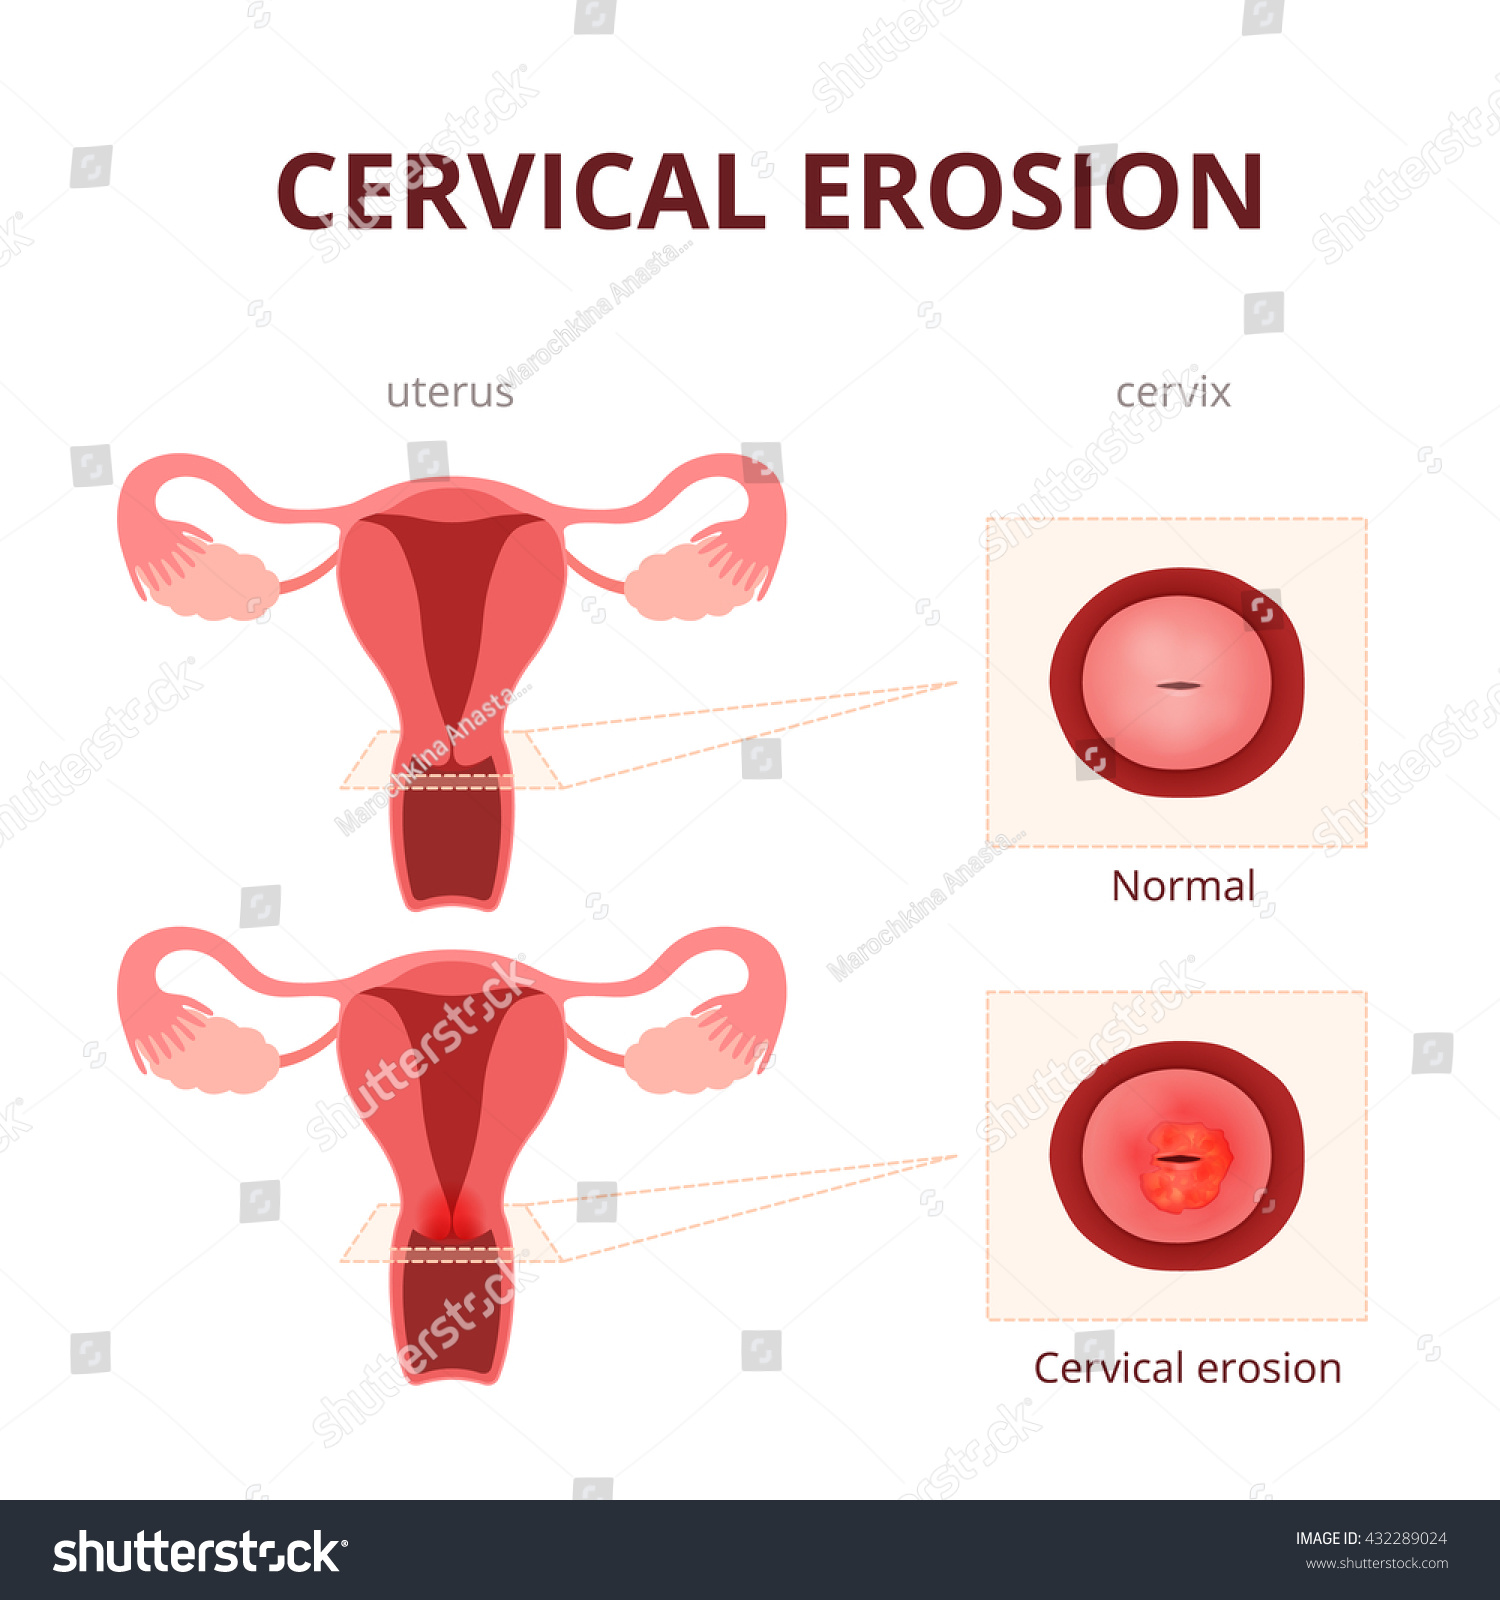 Stock Vector Cervical Erosion Schematic Illustration Of The Uterus And The Cervix Female Reproductive System Diseaseson Female Reproductive System Cervix